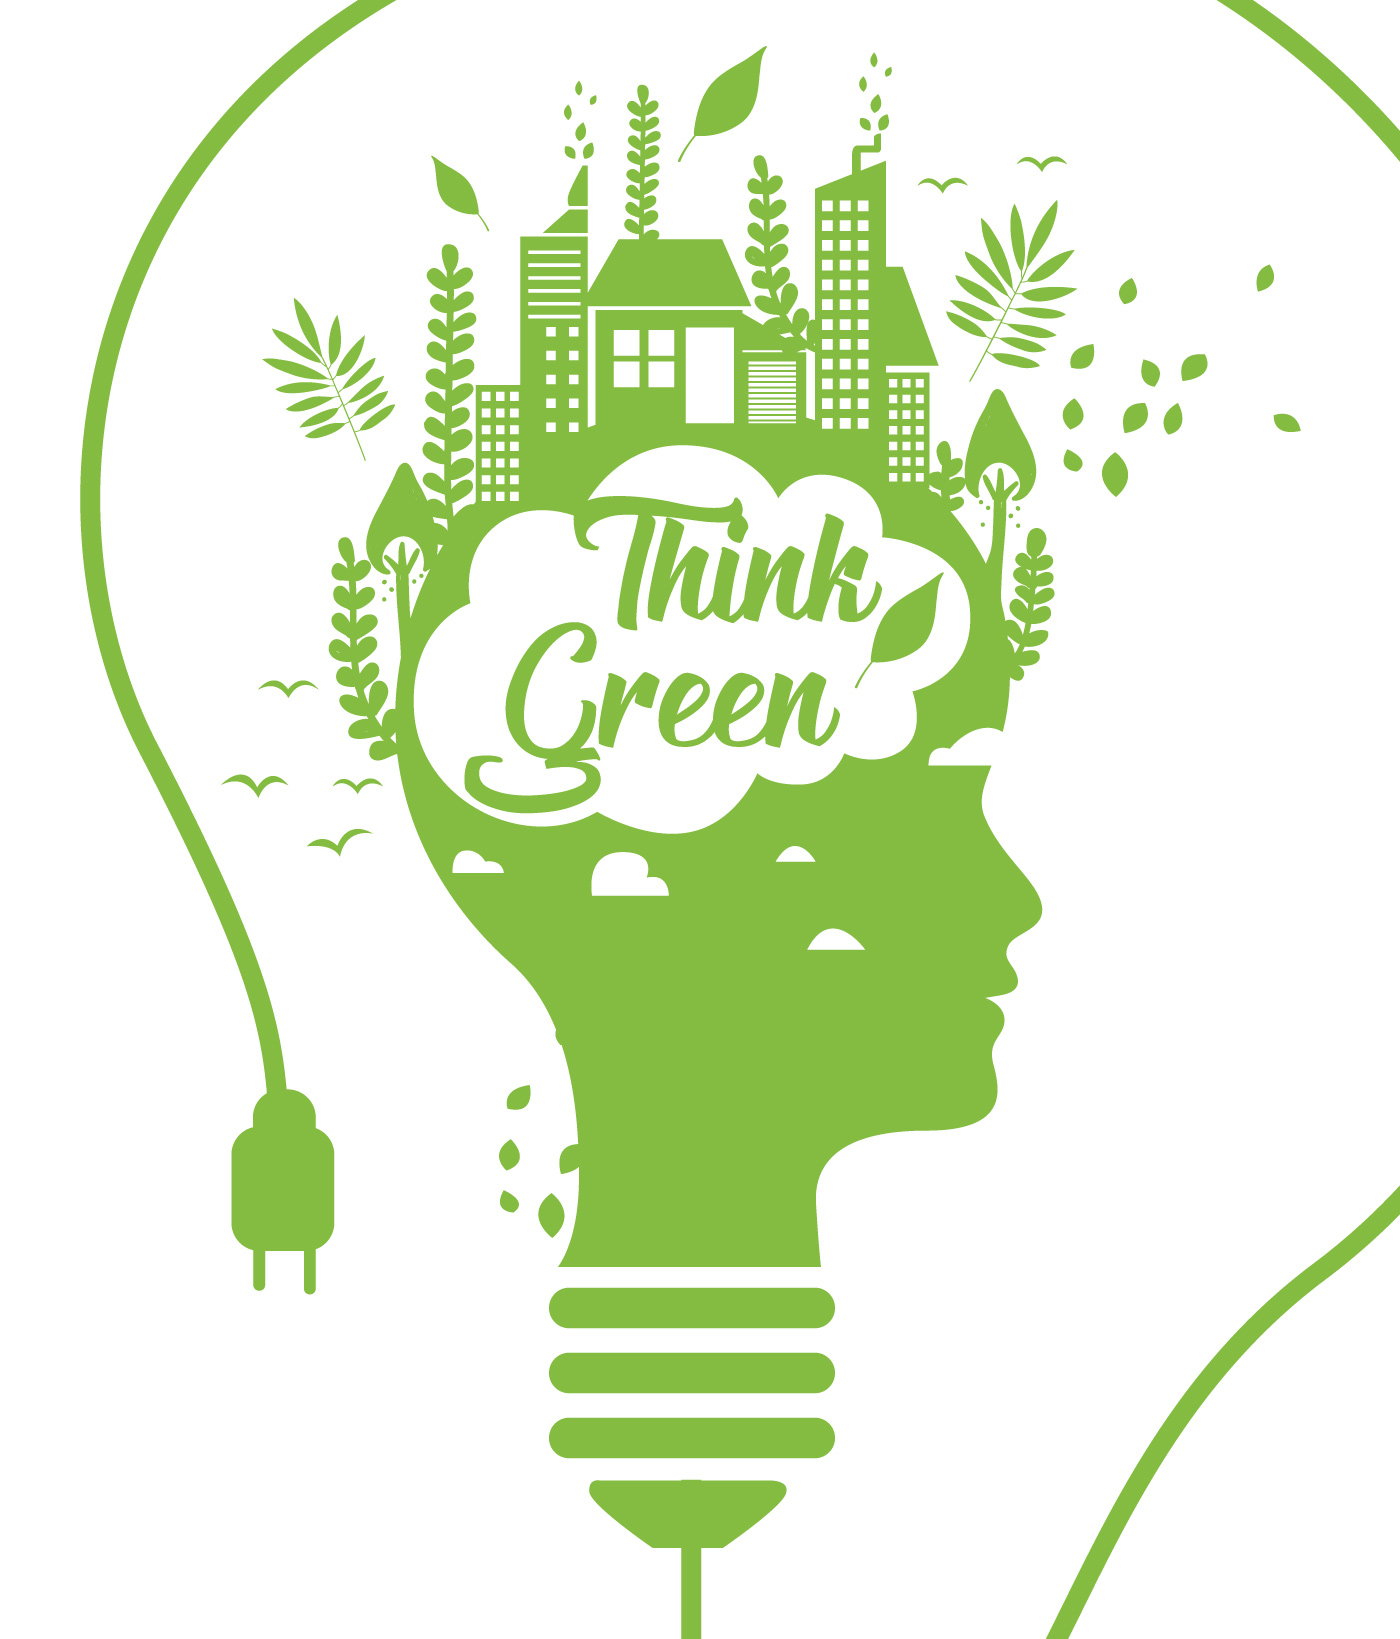 Think Green Poster Vol 3 Vector - Download Free Vectors ...